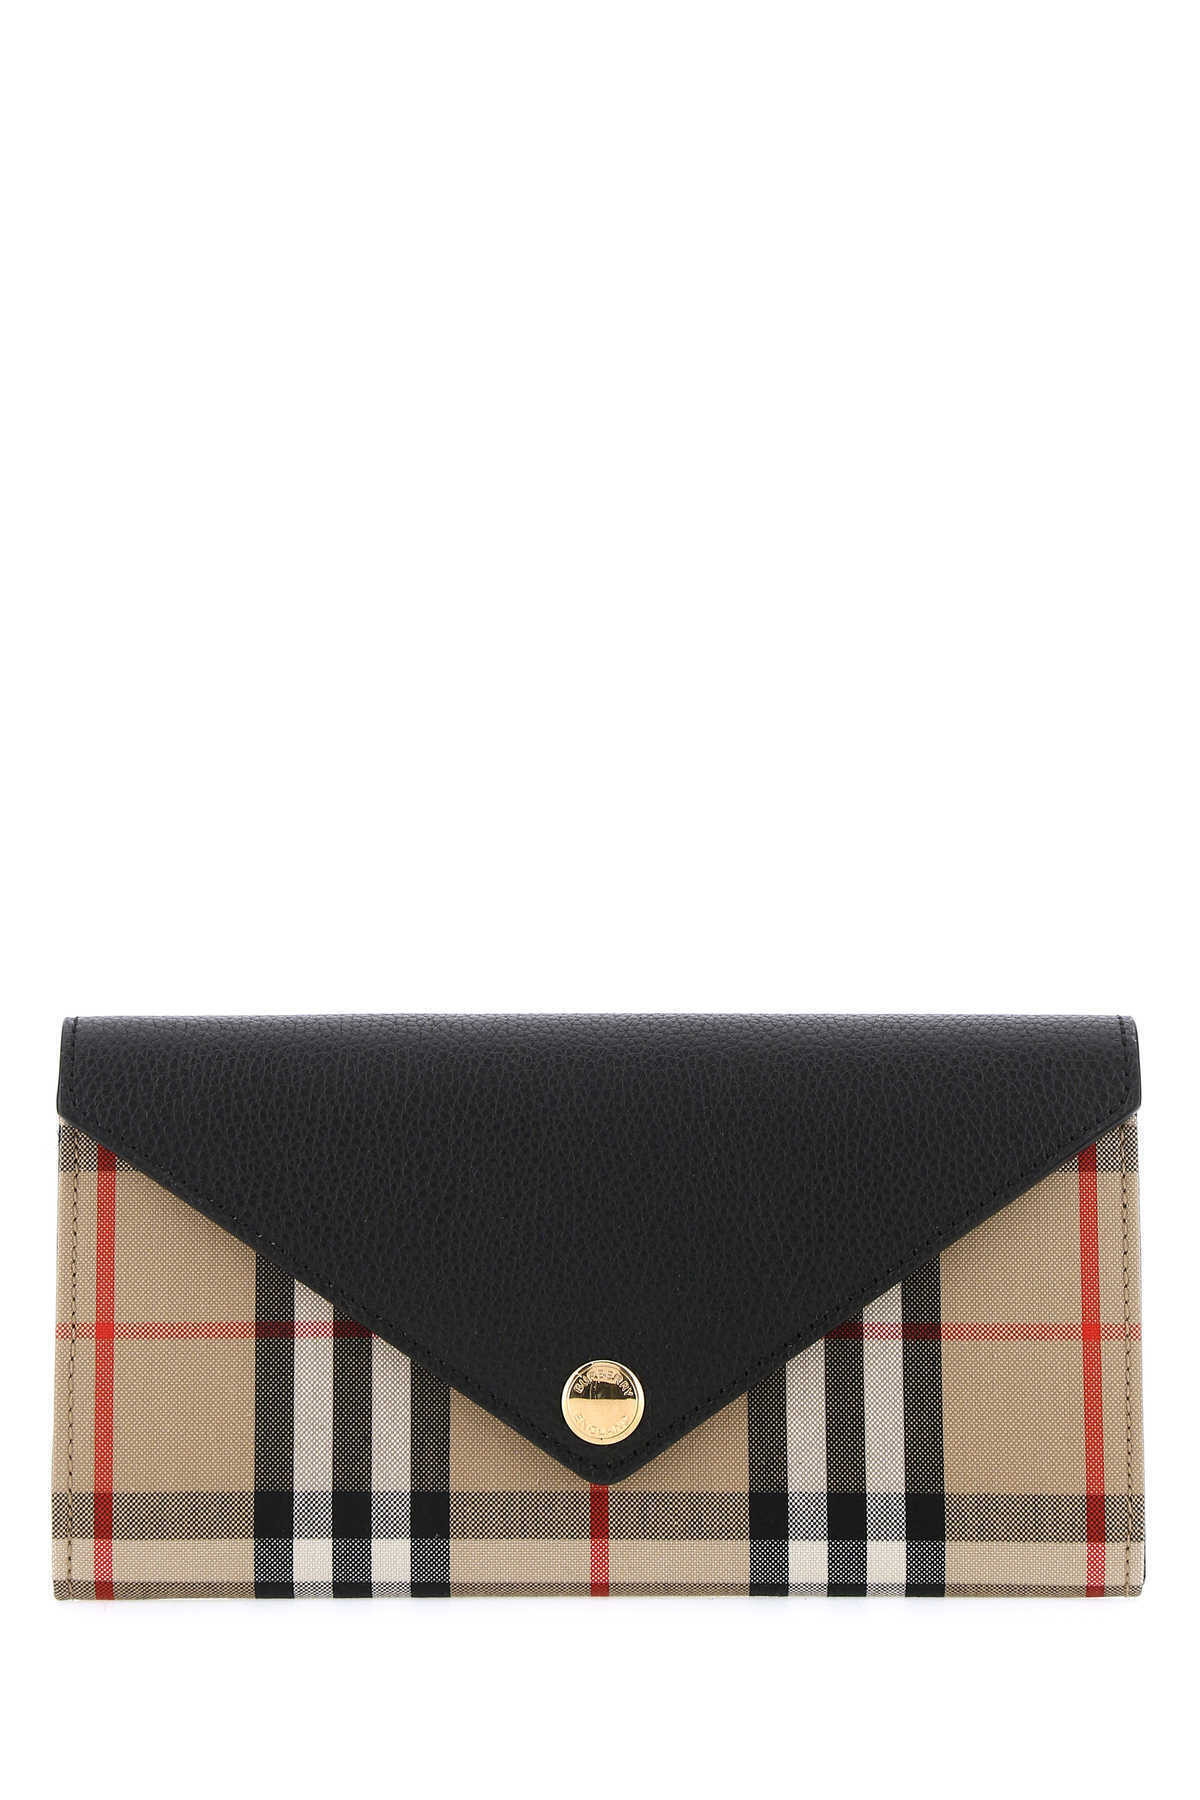 Burberry WALLET (8026108 A1189) (Burberry/財布・小物その他) 68012394